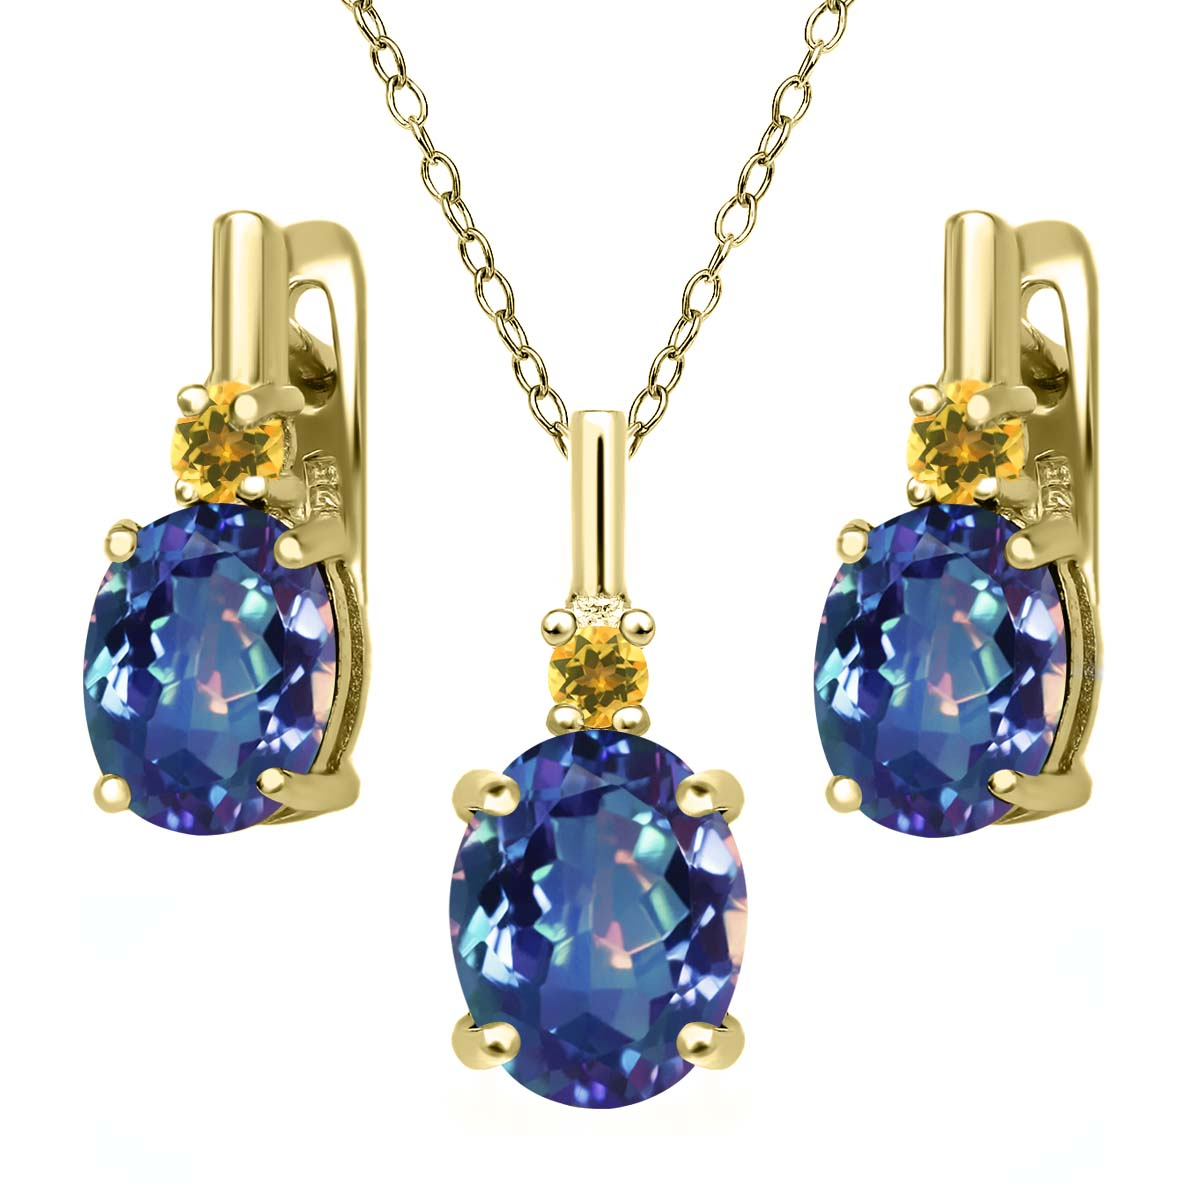 Blue Mystic Quartz Simulated Citrine 18K Gold Plated Silver Pendant Earrings Set by